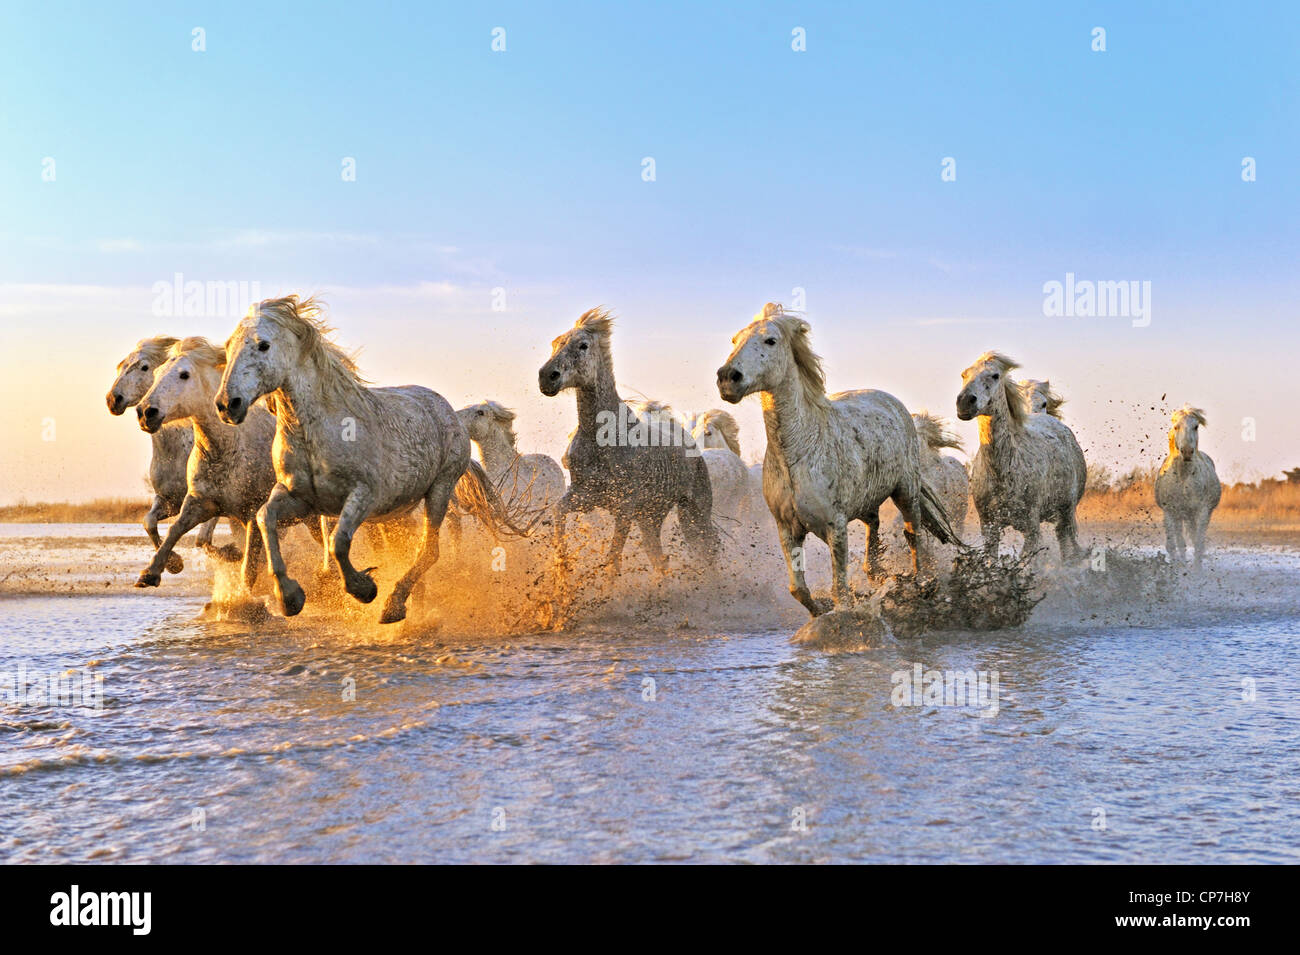 White horse in the Camargue, France Stock Photo